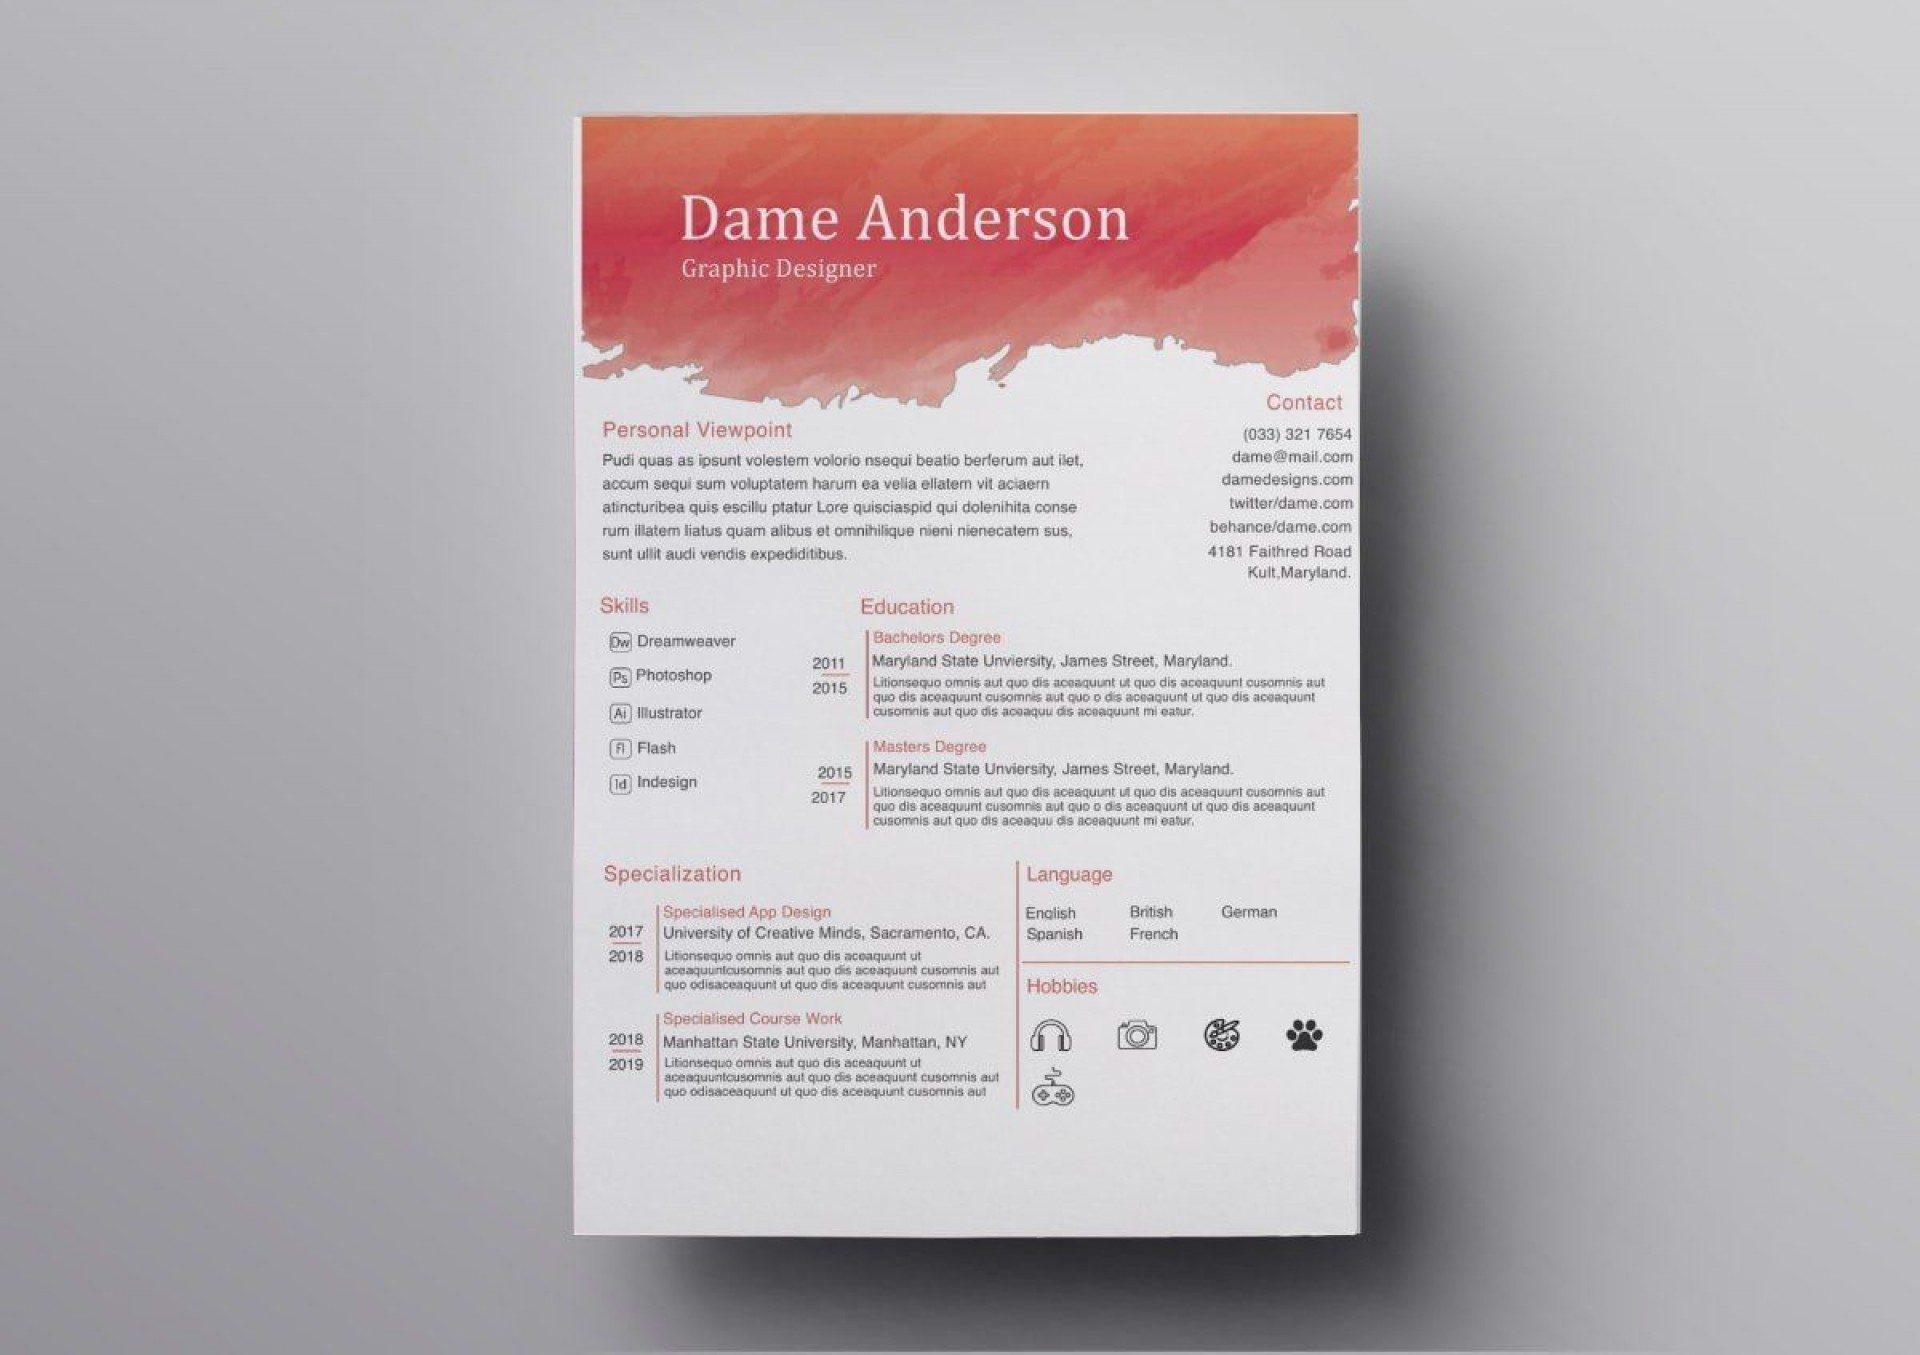 009 Rare Download Free Resume Template For Mac Page Design  Pages1920